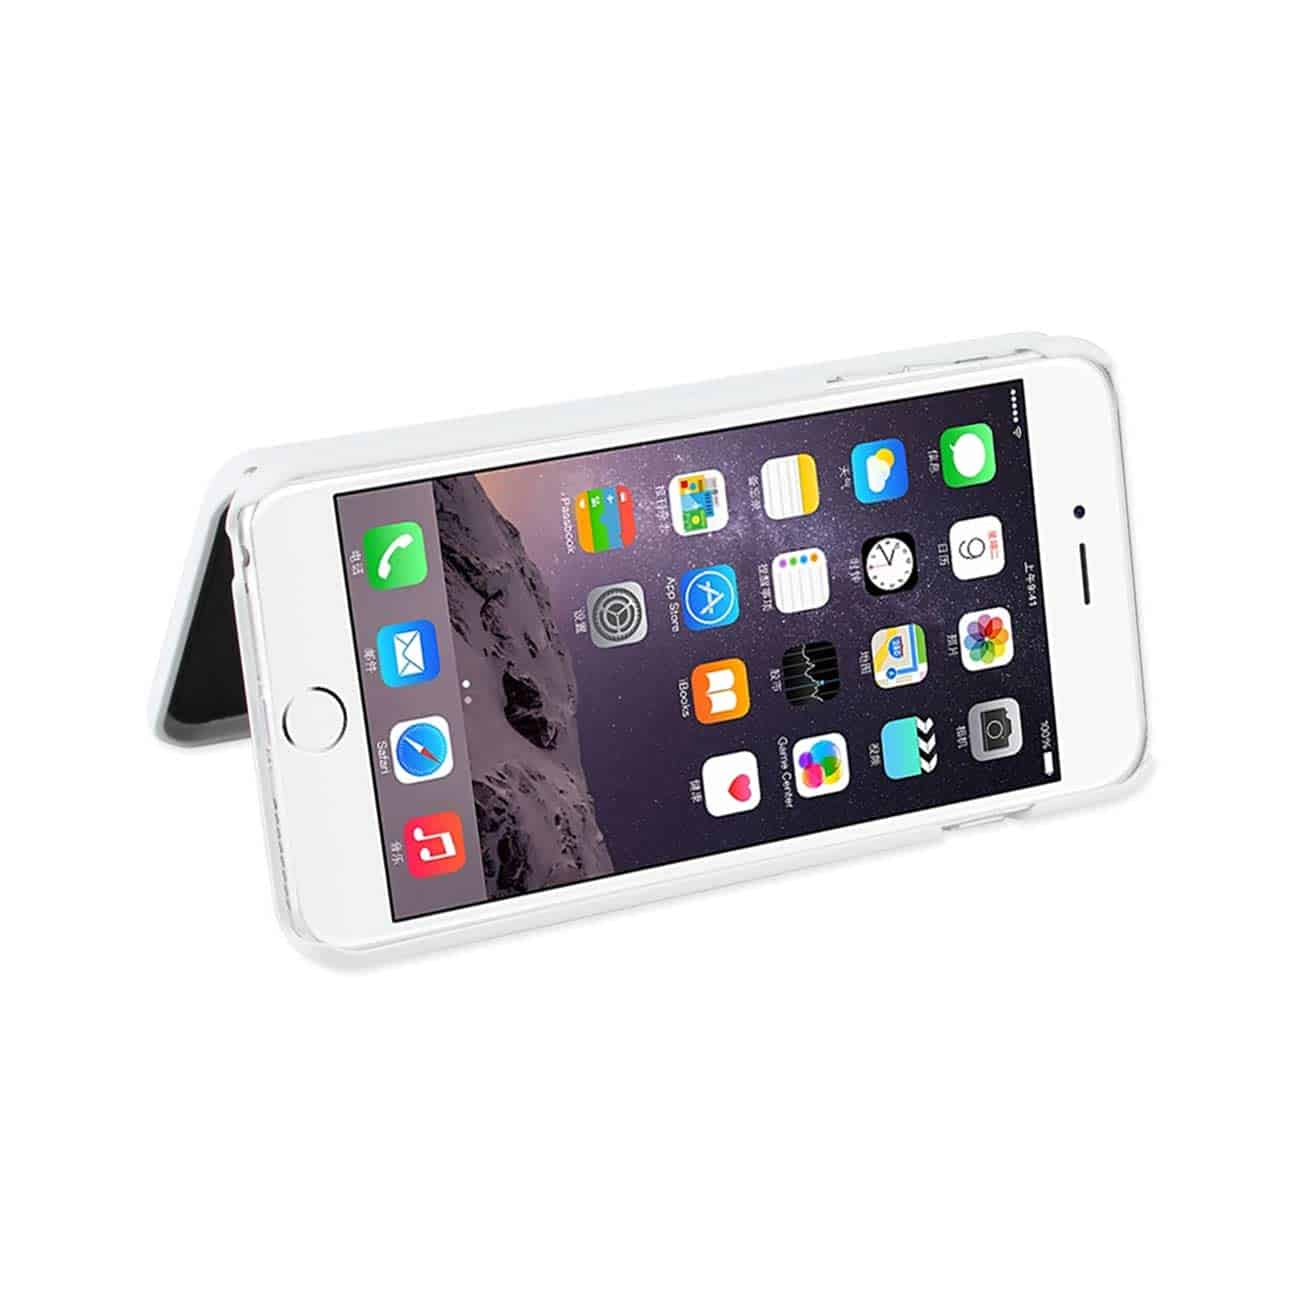 IPHONE 6 PLUS/ 6S PLUS HIDDEN MIRROR WALLET CASE WITH KICKSTAND FUNCTION IN WHITE